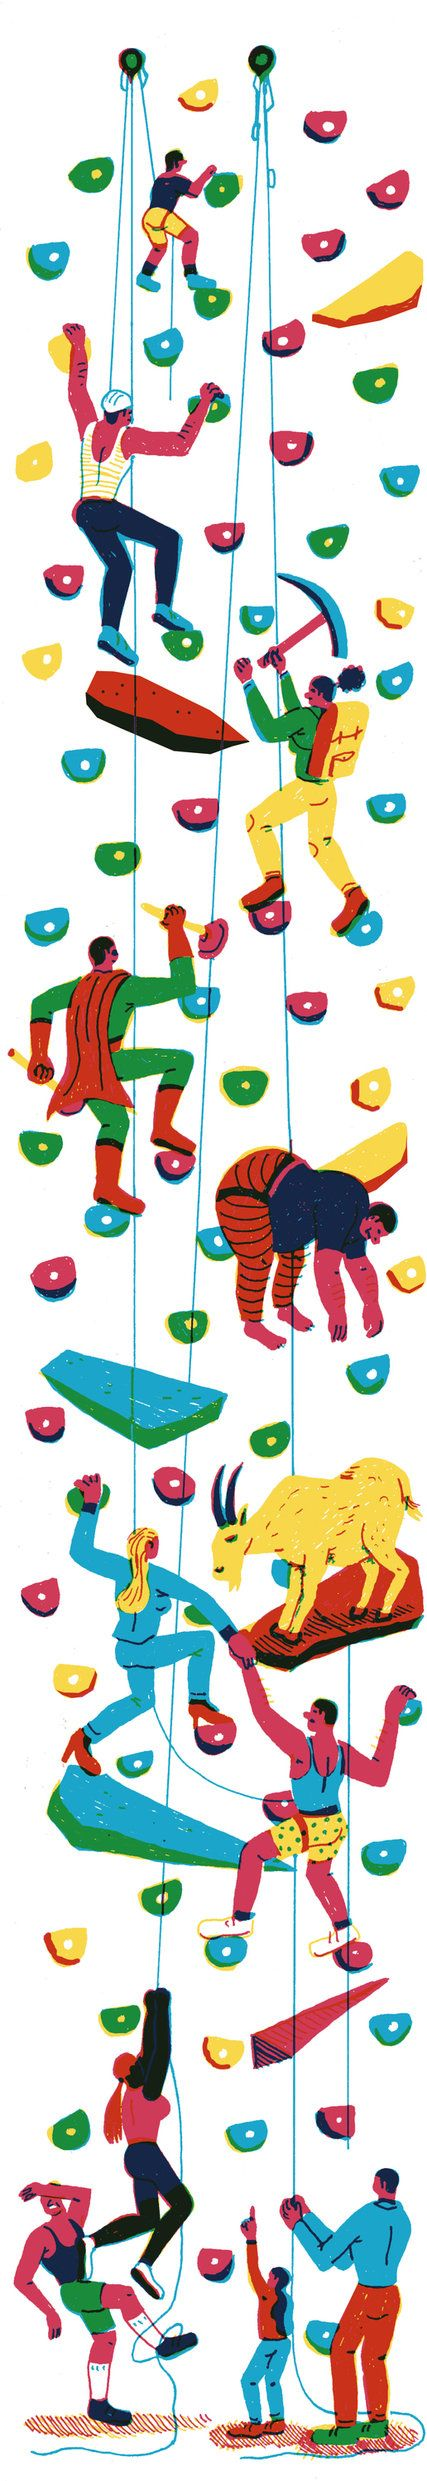 Thanks to the debut of modern climbing gyms, rock climbing has developed into a mature sport for adult athletes. Daniel Duane's Op-Ed explains the trendy rise of grown-ups climbing walls. (Illustration: Brecht Vandenbroucke)